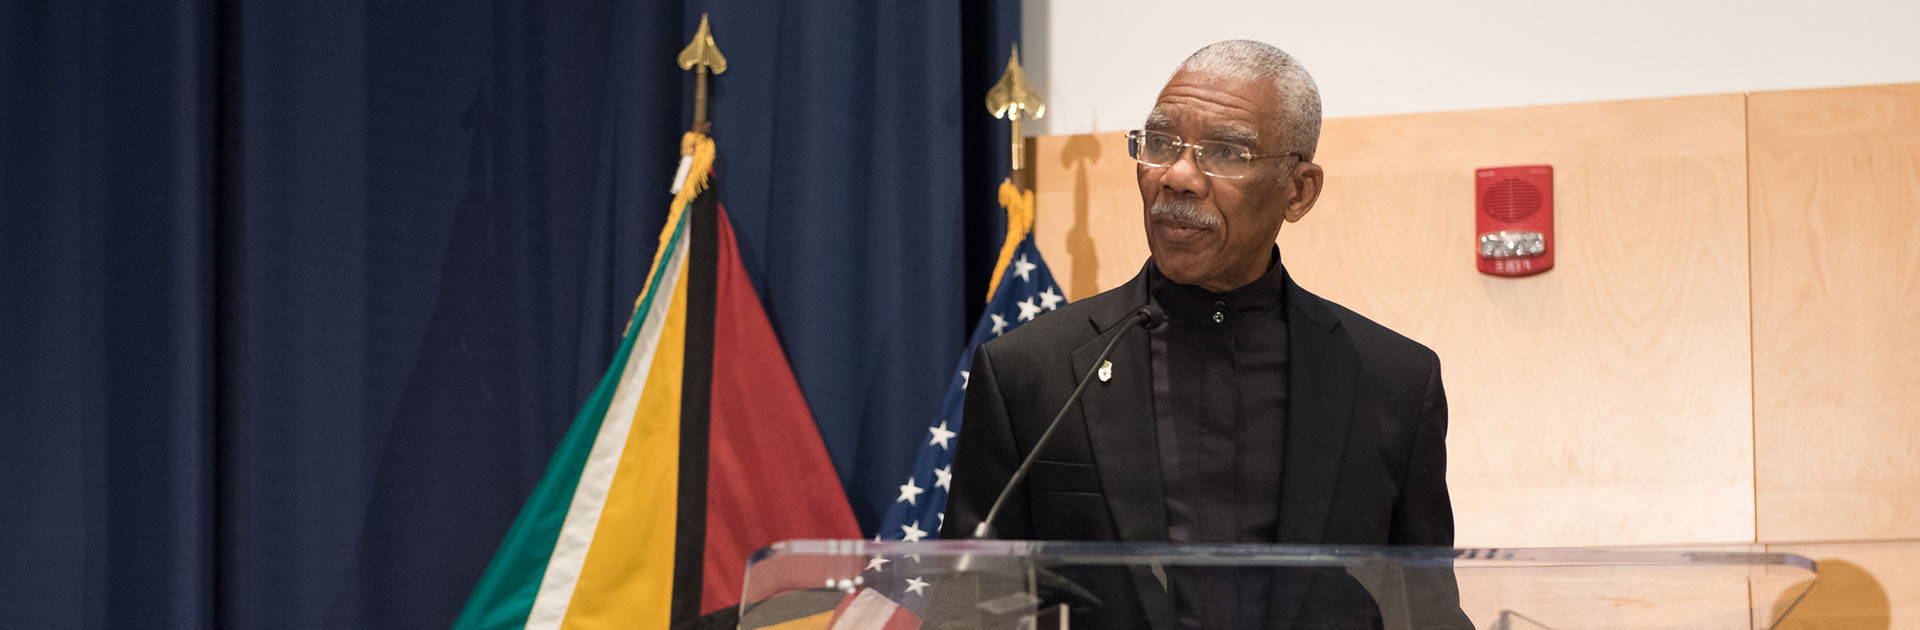 President Granger of Guyana addresses the audience at the 2017 Perry Award Ceremony